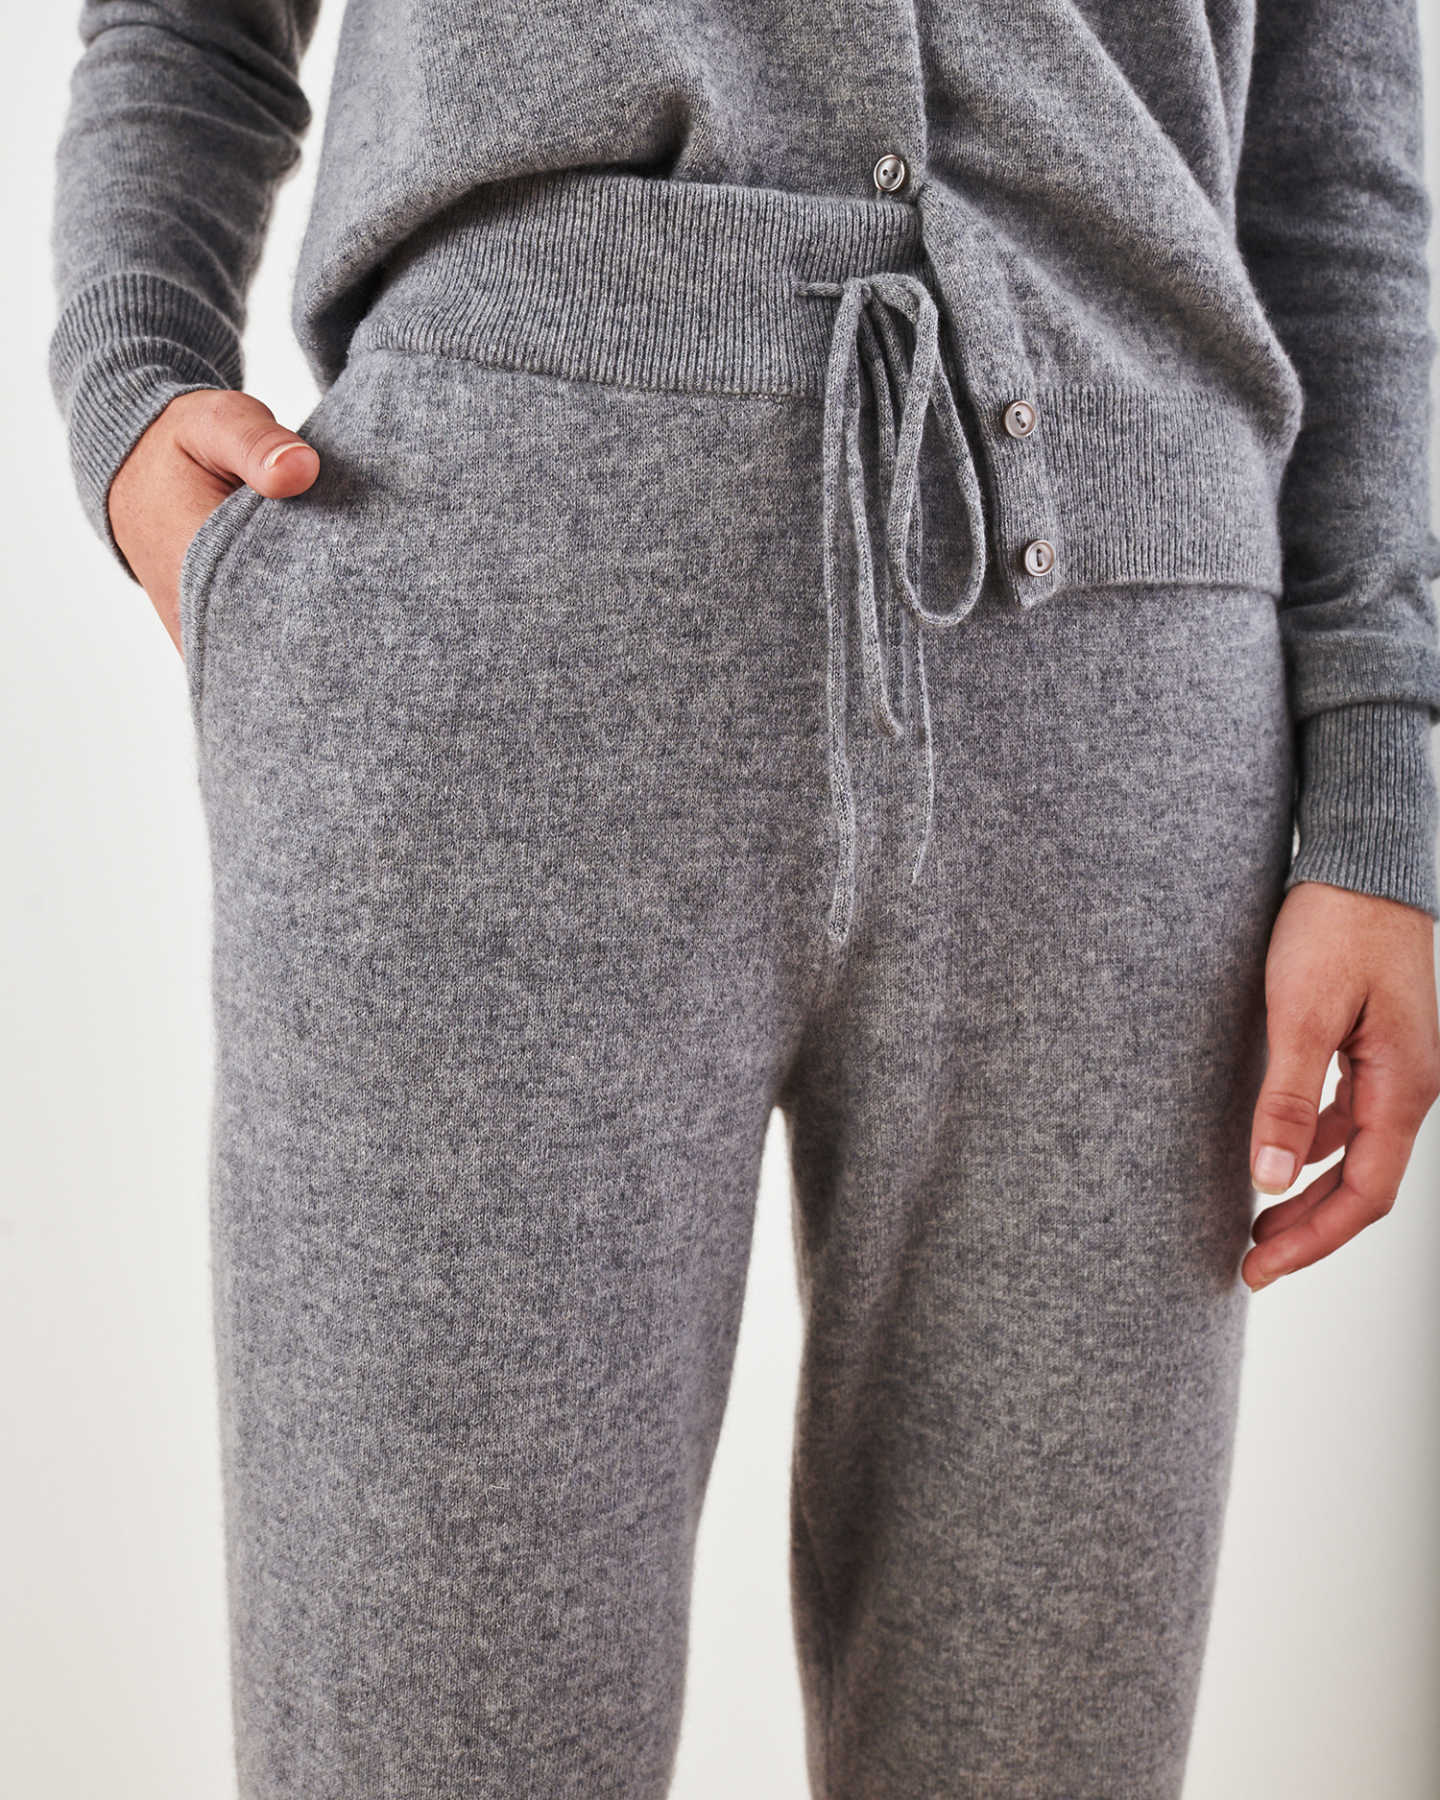 Woman wearing grey cashmere sweatpants & cashmere joggers zoomed in